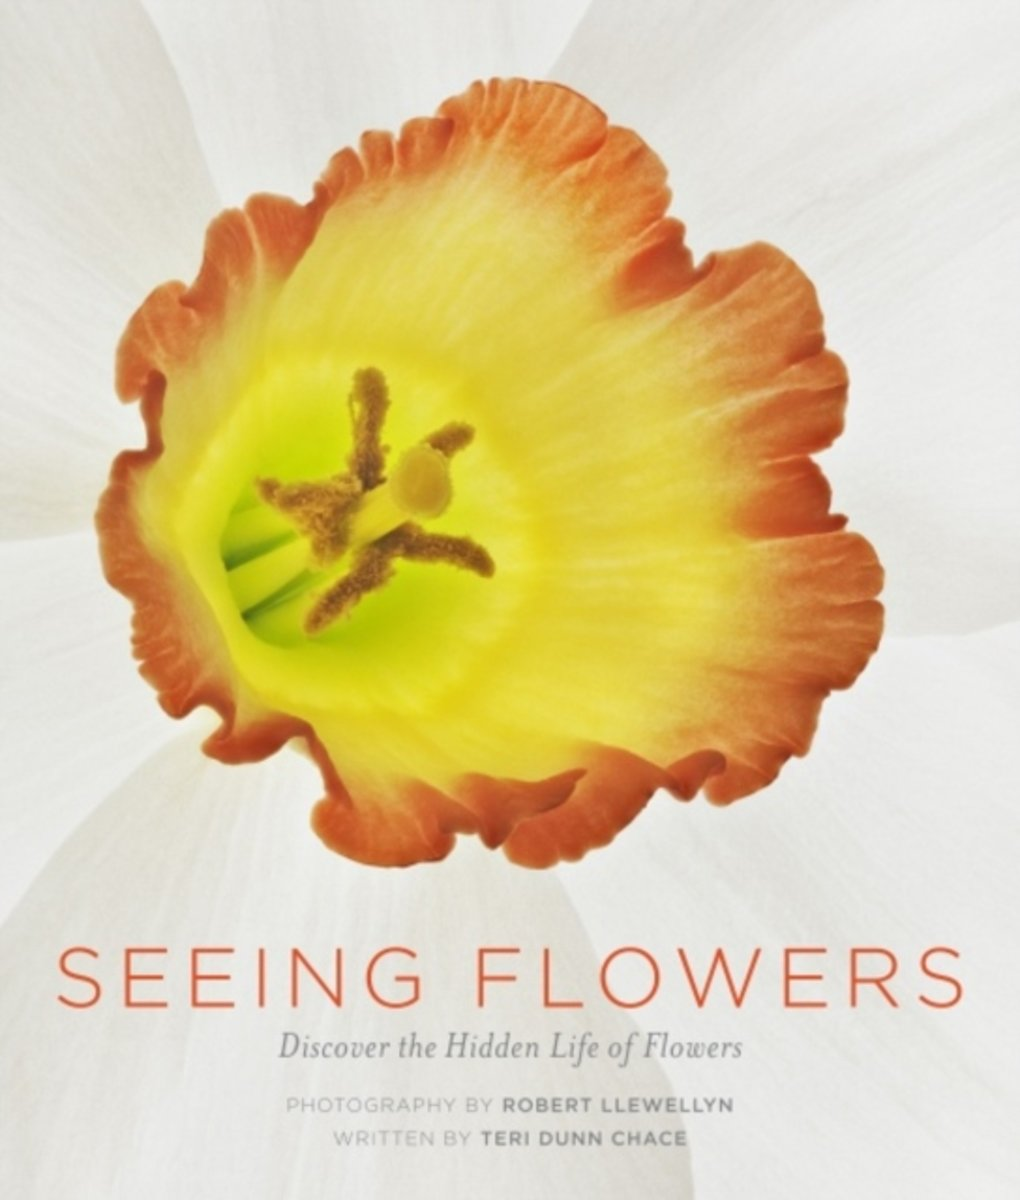 Seeing Flowers Discover the Hidden Life of Flowers